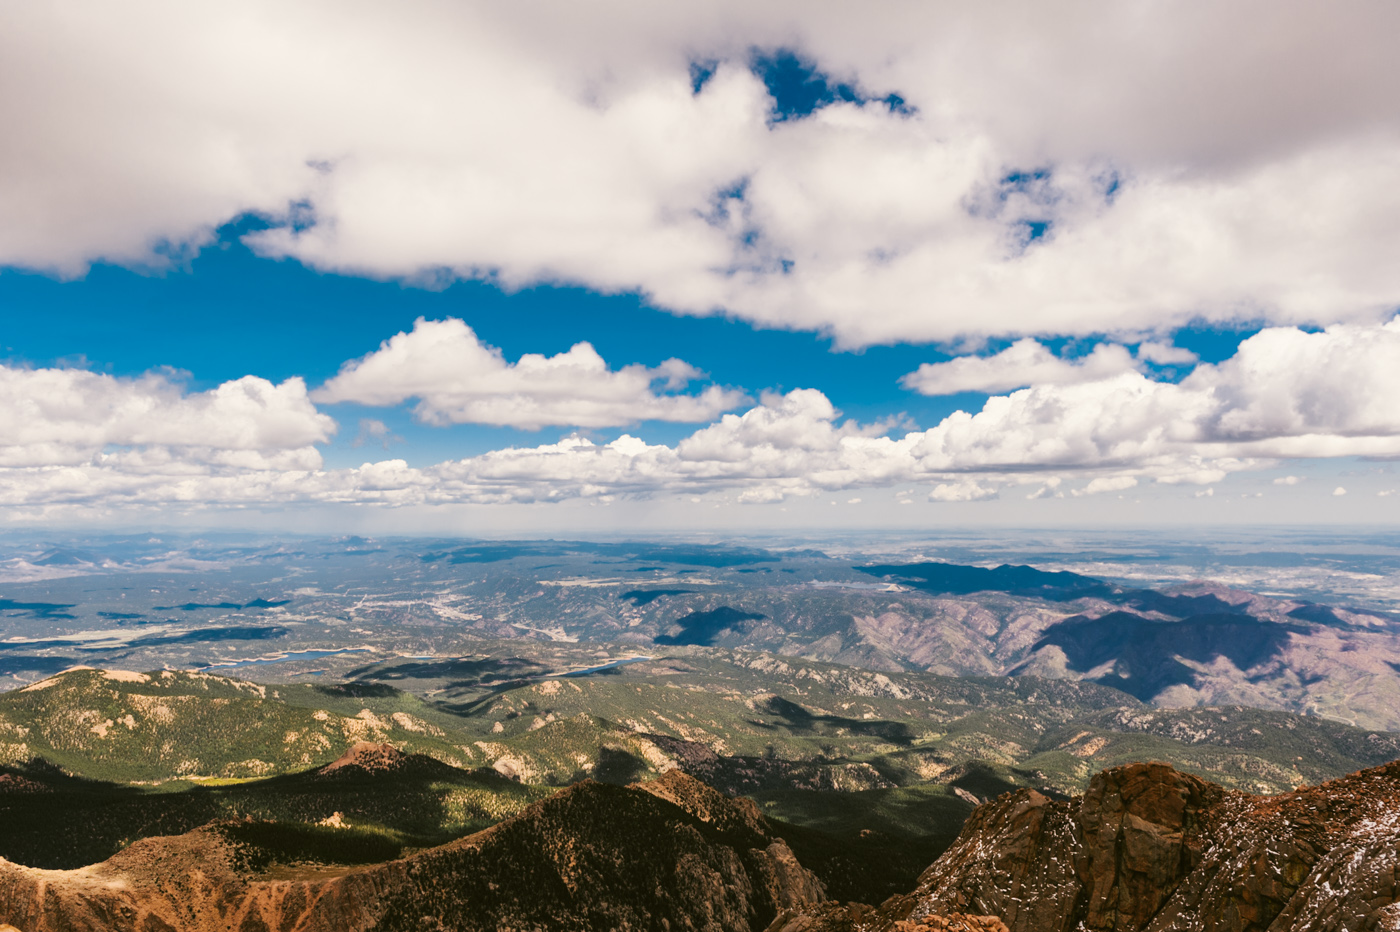 From the summit of Pikes Peak with an elevation of 14,110ft.